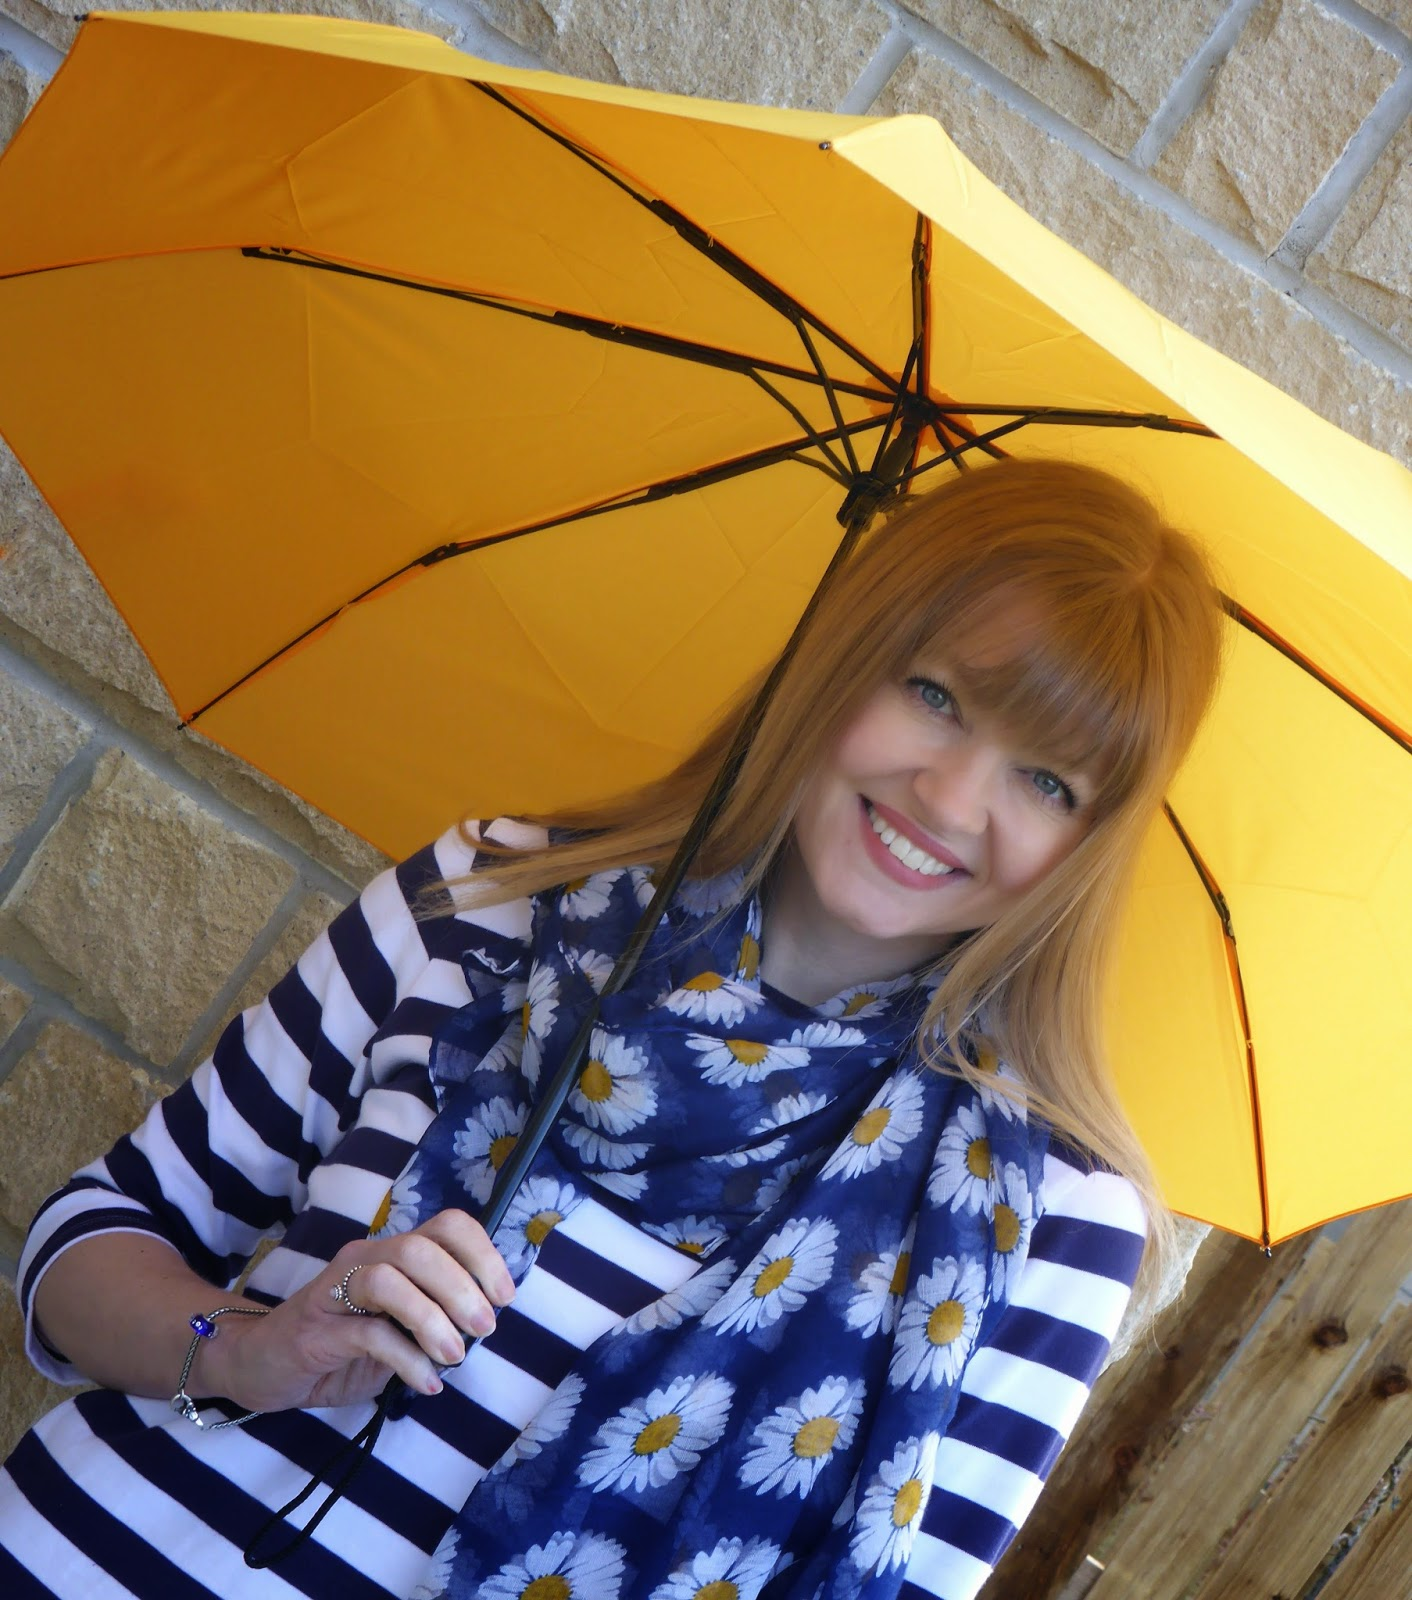 Over 40 blogger What Lizzy Loves wearing Jack Wills Alburgh breton with floral scarf and yellow umbrella